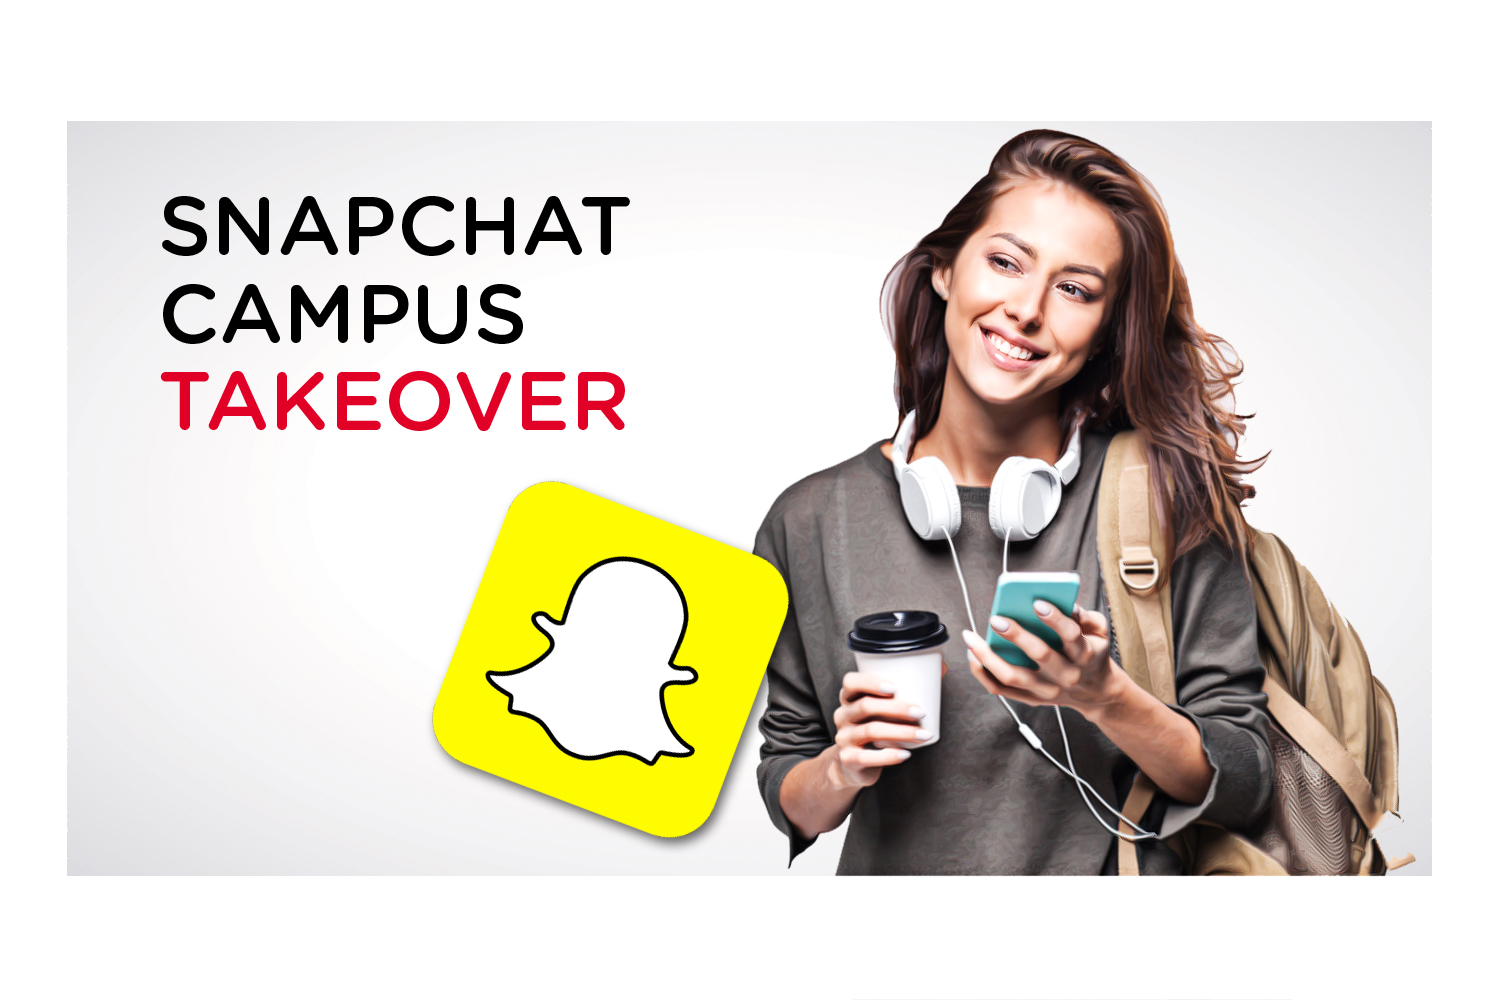 Snapchat takeover pages